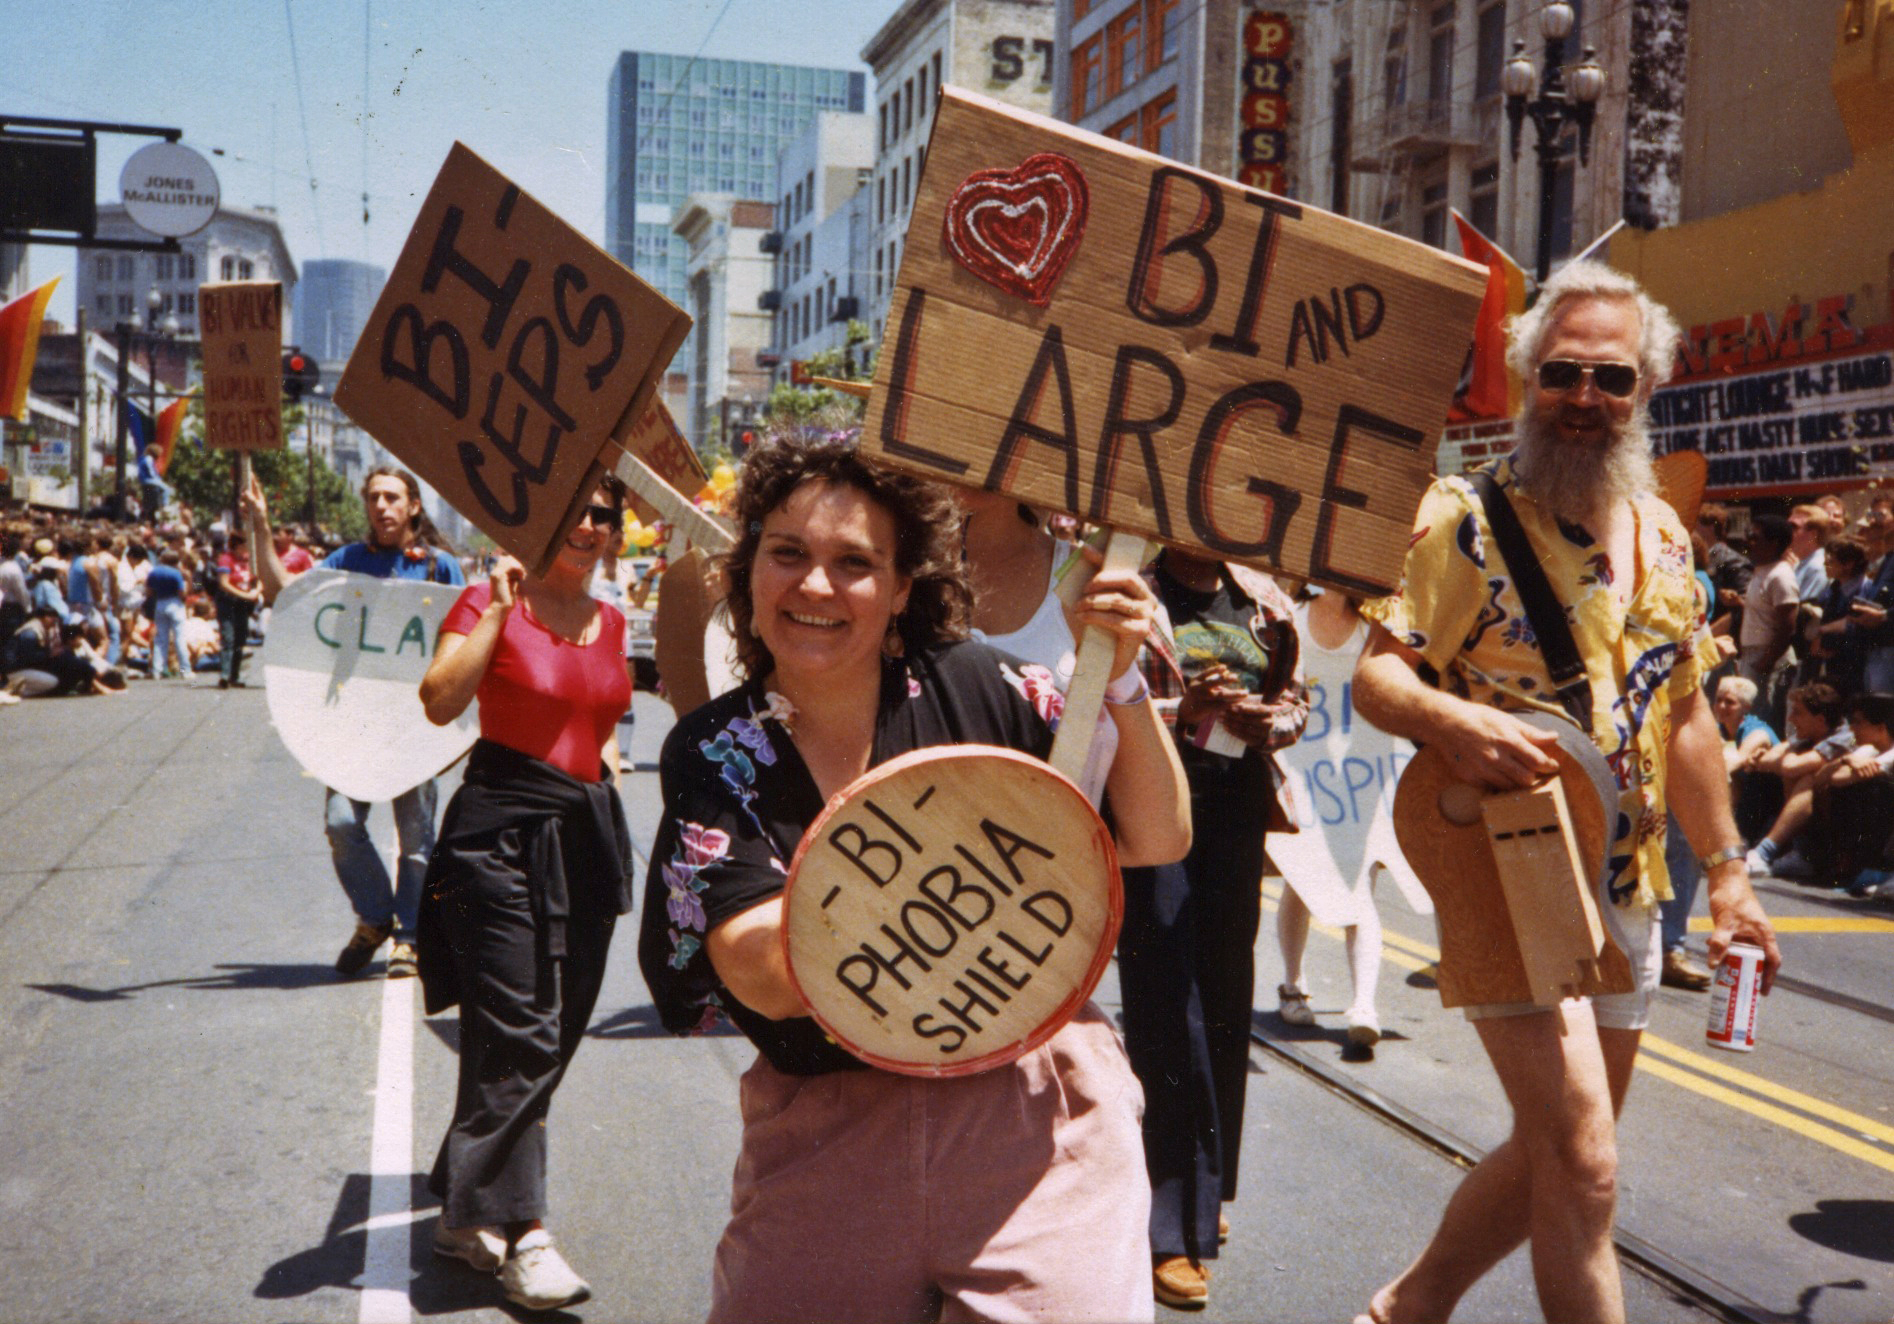 """Arlene Krantz, BiPOL co-founder Lani Ka'ahumanu wields her """"Bi-Phobia Shield"""" as she marches with her contingent in the 1984 Lesbian and Gay Freedom Day Parade (1984). Left to right: BiPOL co-founder Bill Mack, Lynne Frawley, Ka'ahumanu, unknown."""